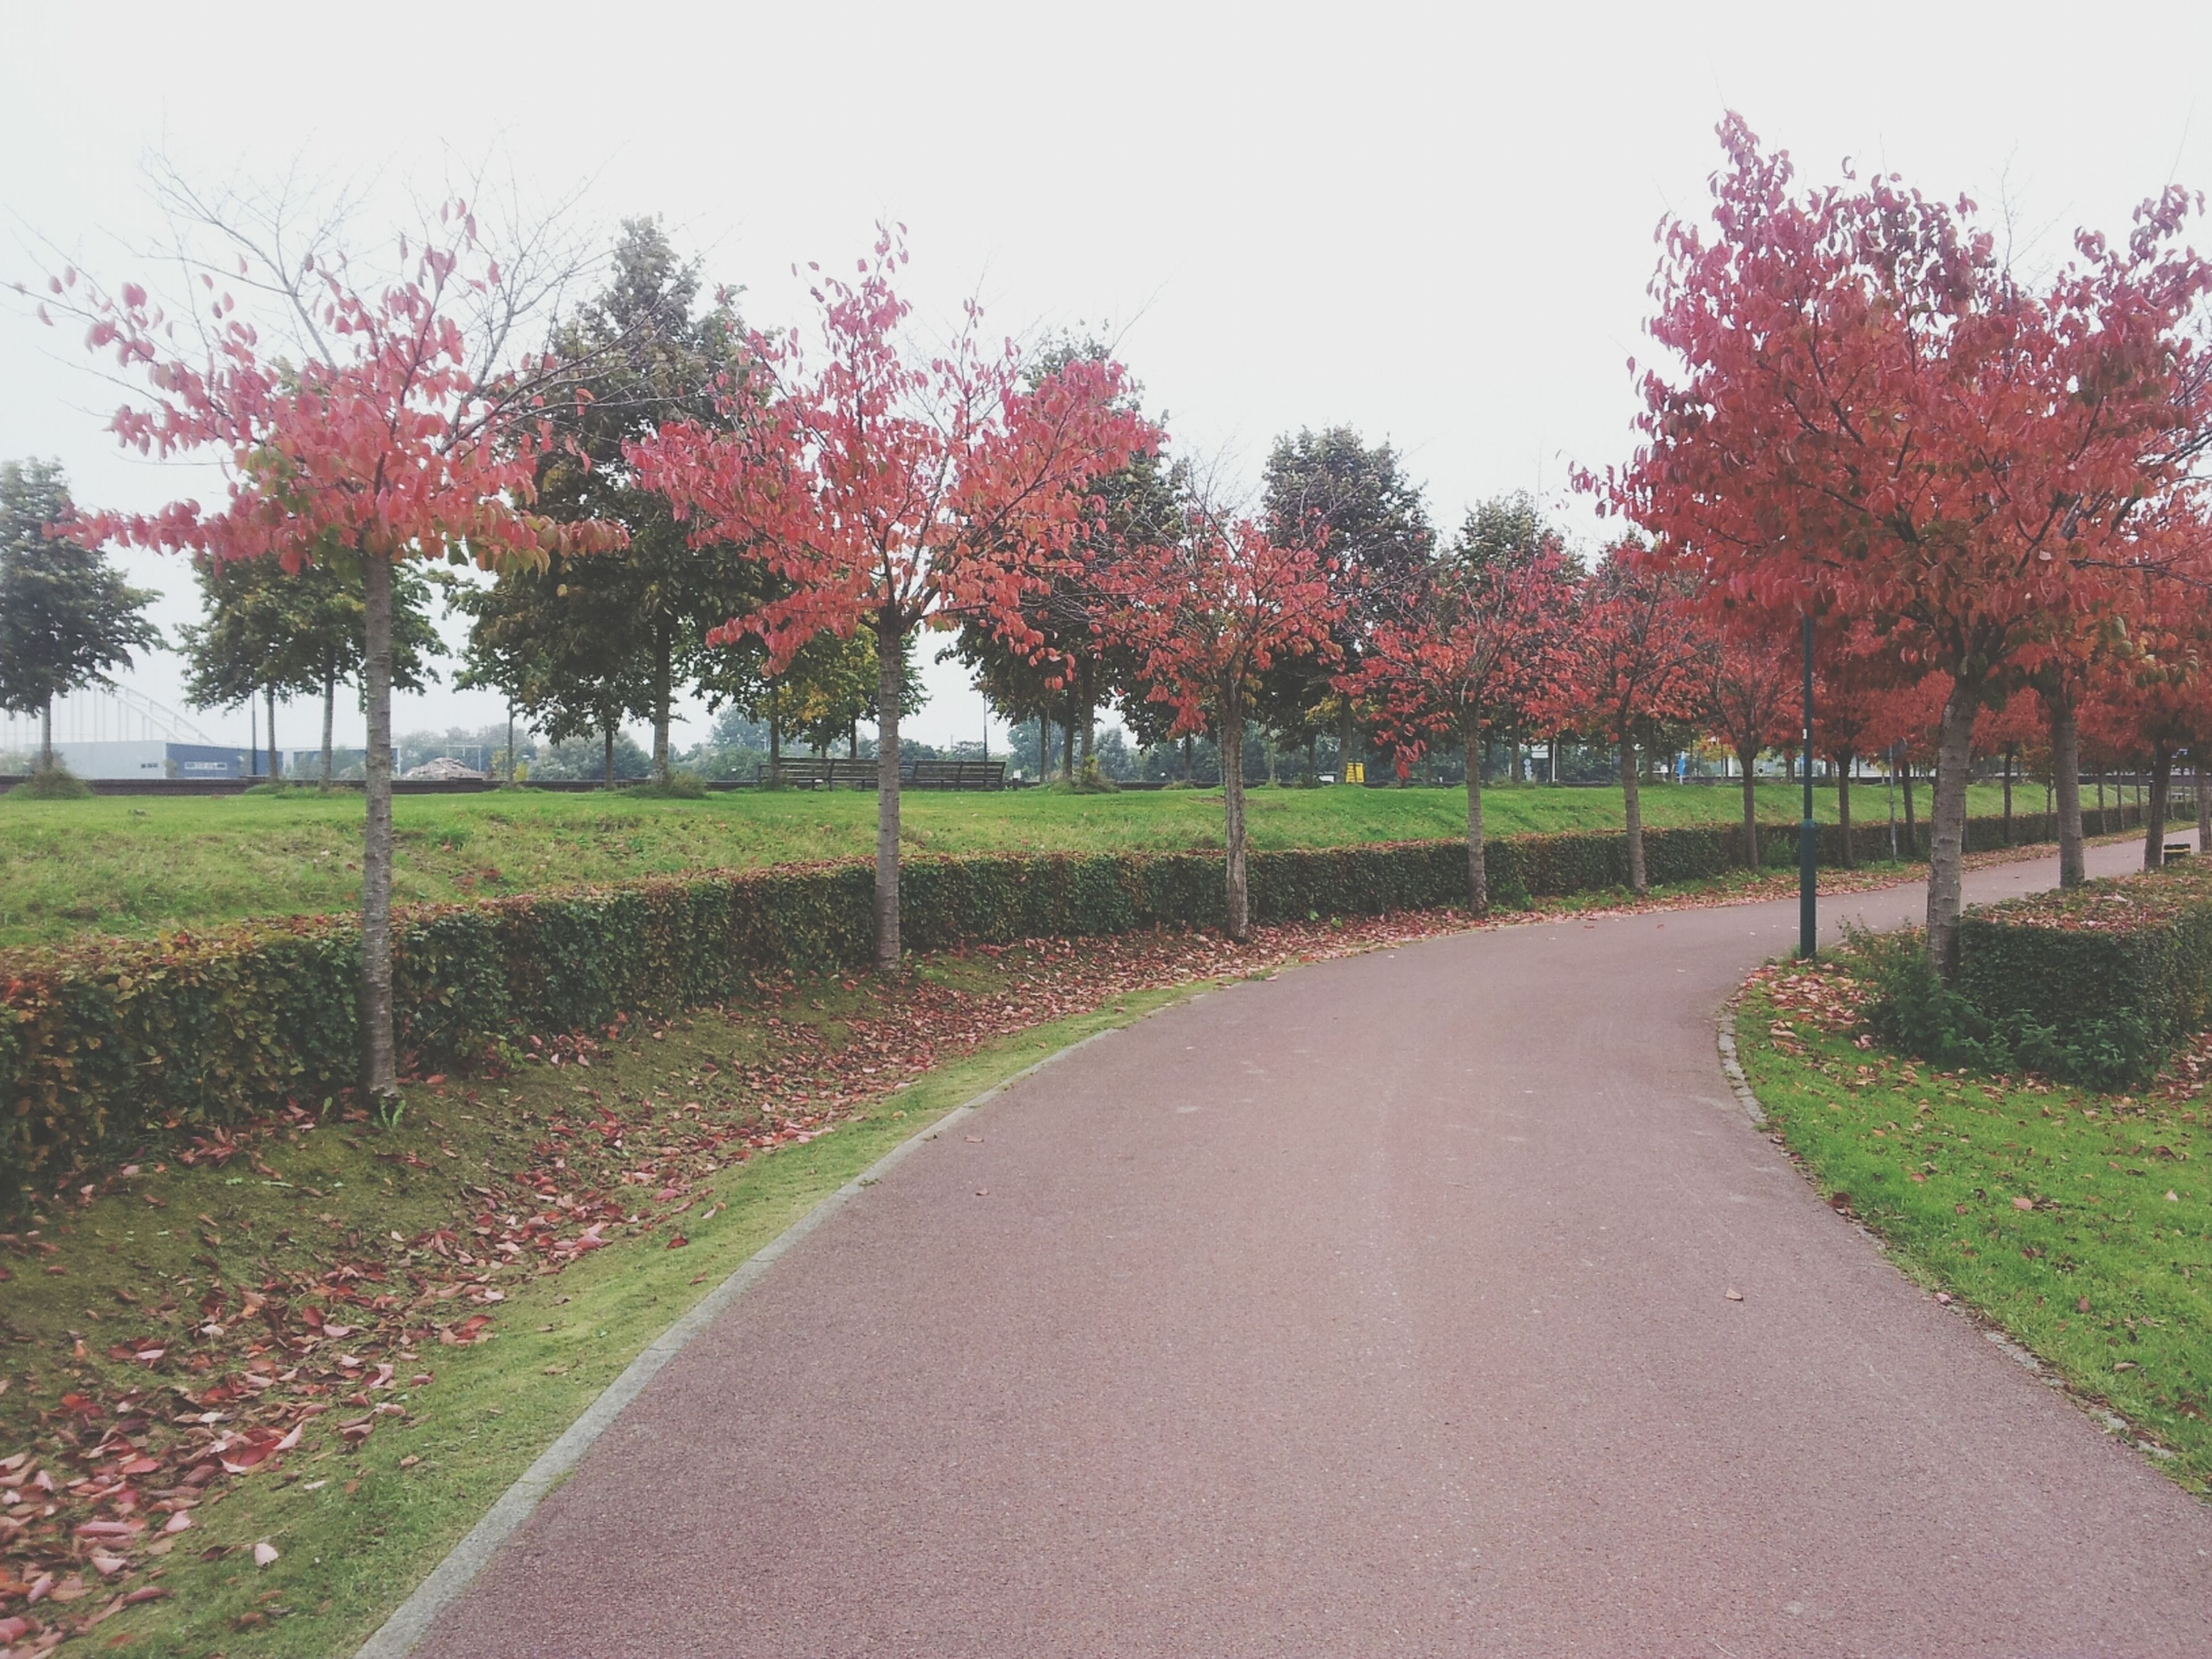 tree, grass, autumn, tranquility, the way forward, tranquil scene, nature, road, change, beauty in nature, growth, clear sky, park - man made space, scenics, green color, season, diminishing perspective, landscape, footpath, field